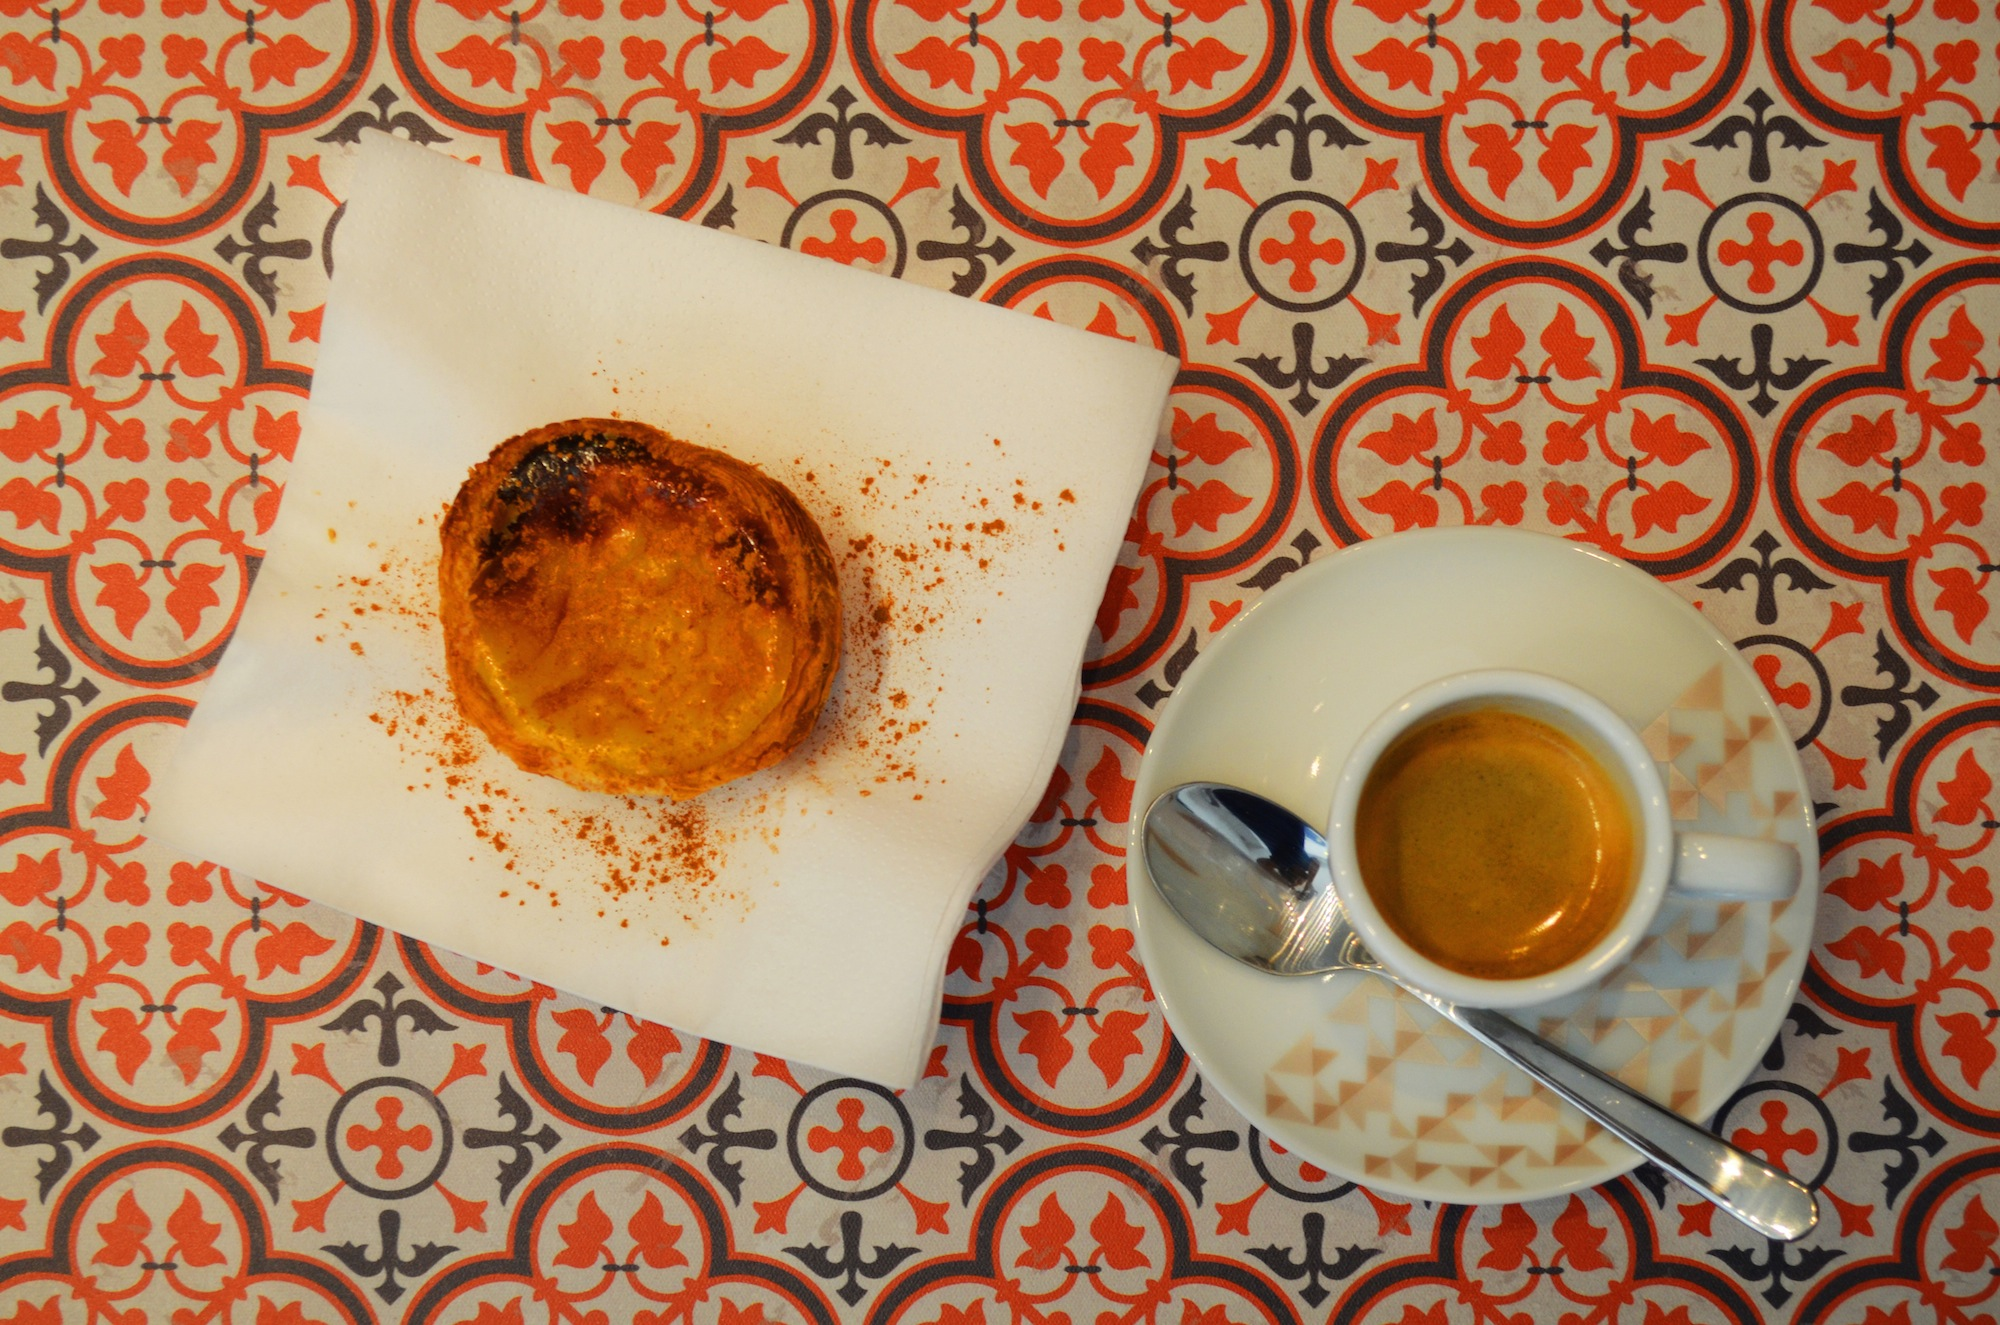 HiP Paris Blog rounds up the 7th arrondissement